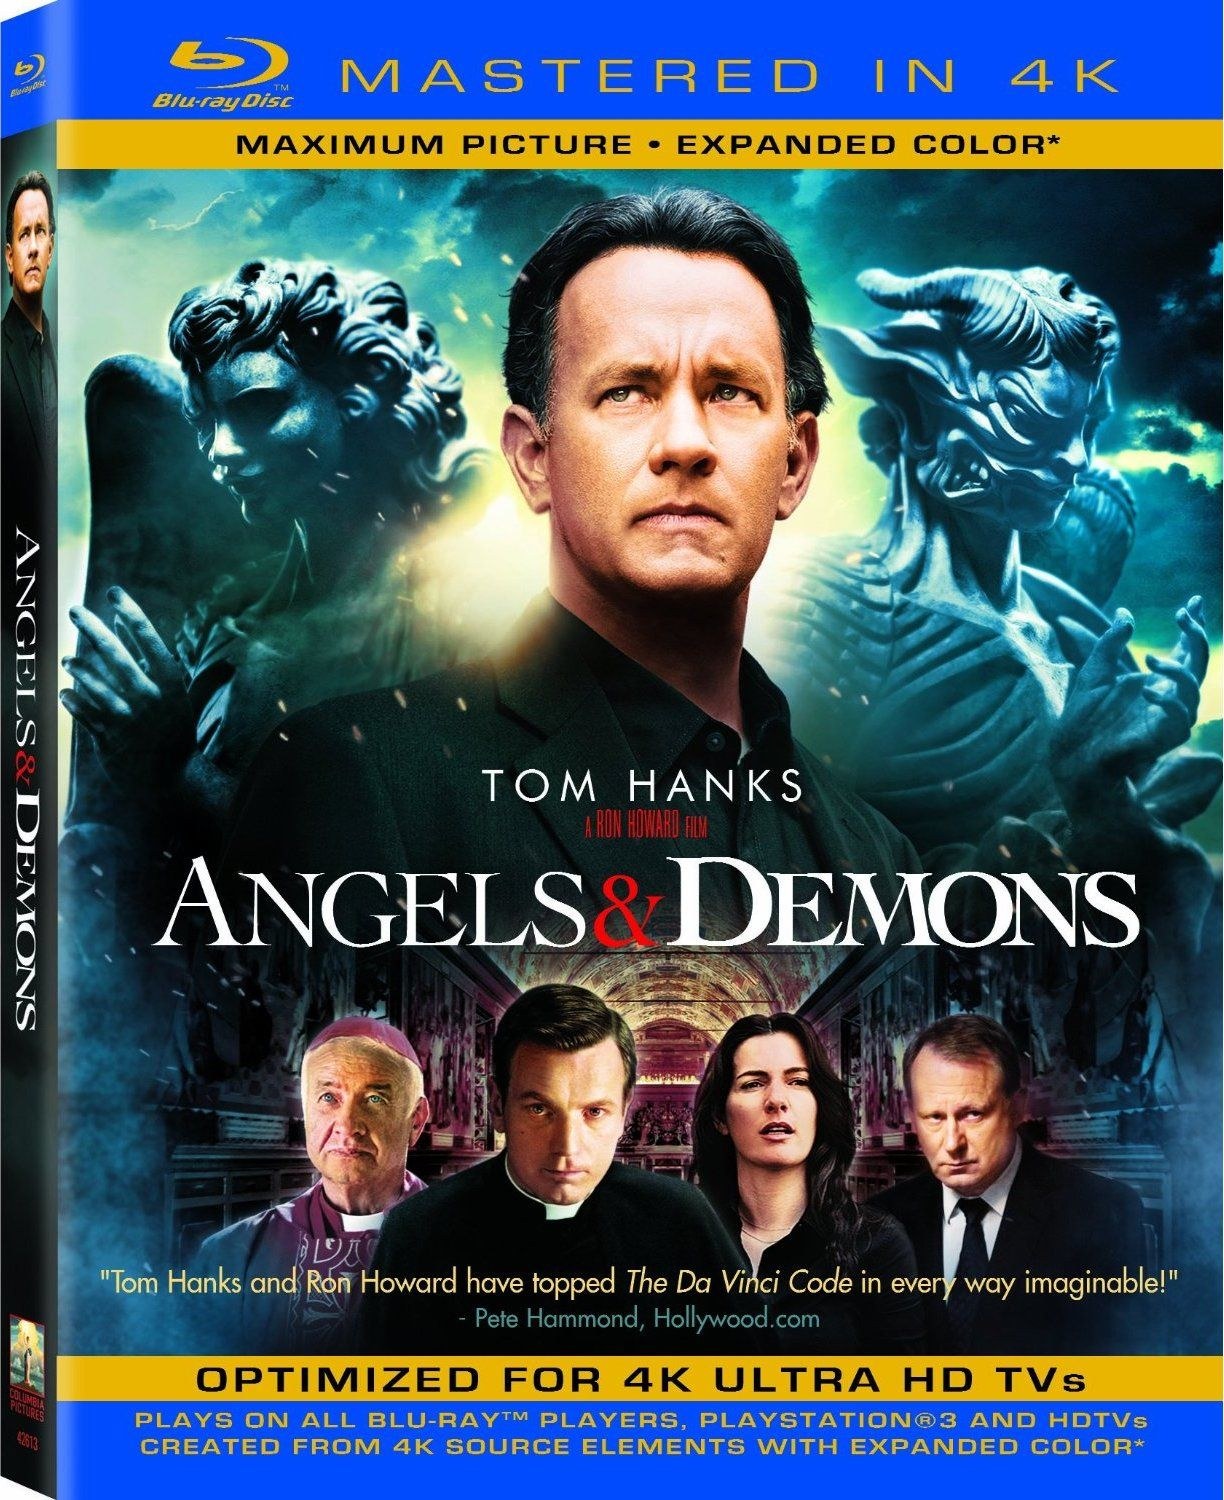 Angeli e Demoni (2009) Mastered in 4k Video Untouched 39.3 GB ITA_ENG DTS-HD MA+AC3 5.1 Subs MKV